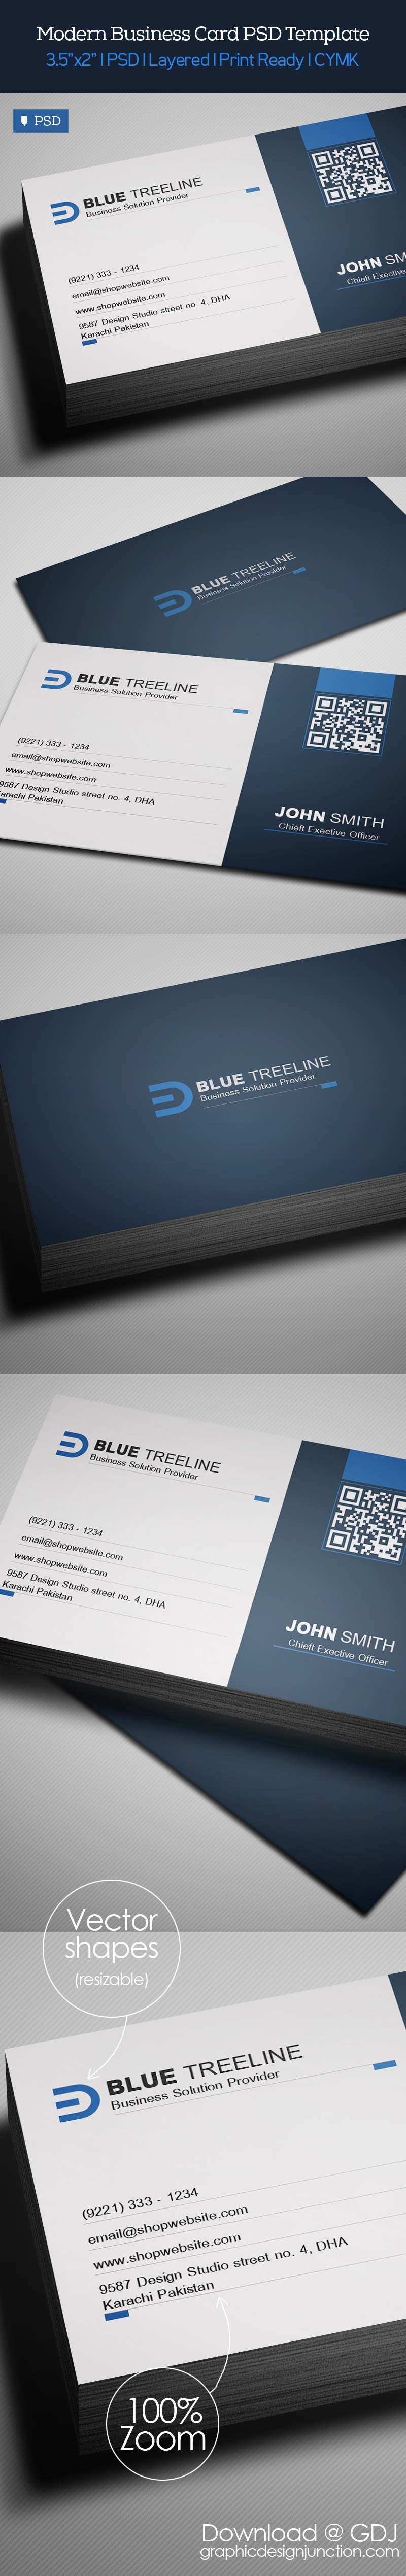 Free modern business card psd template freebies for Free business card templates psd